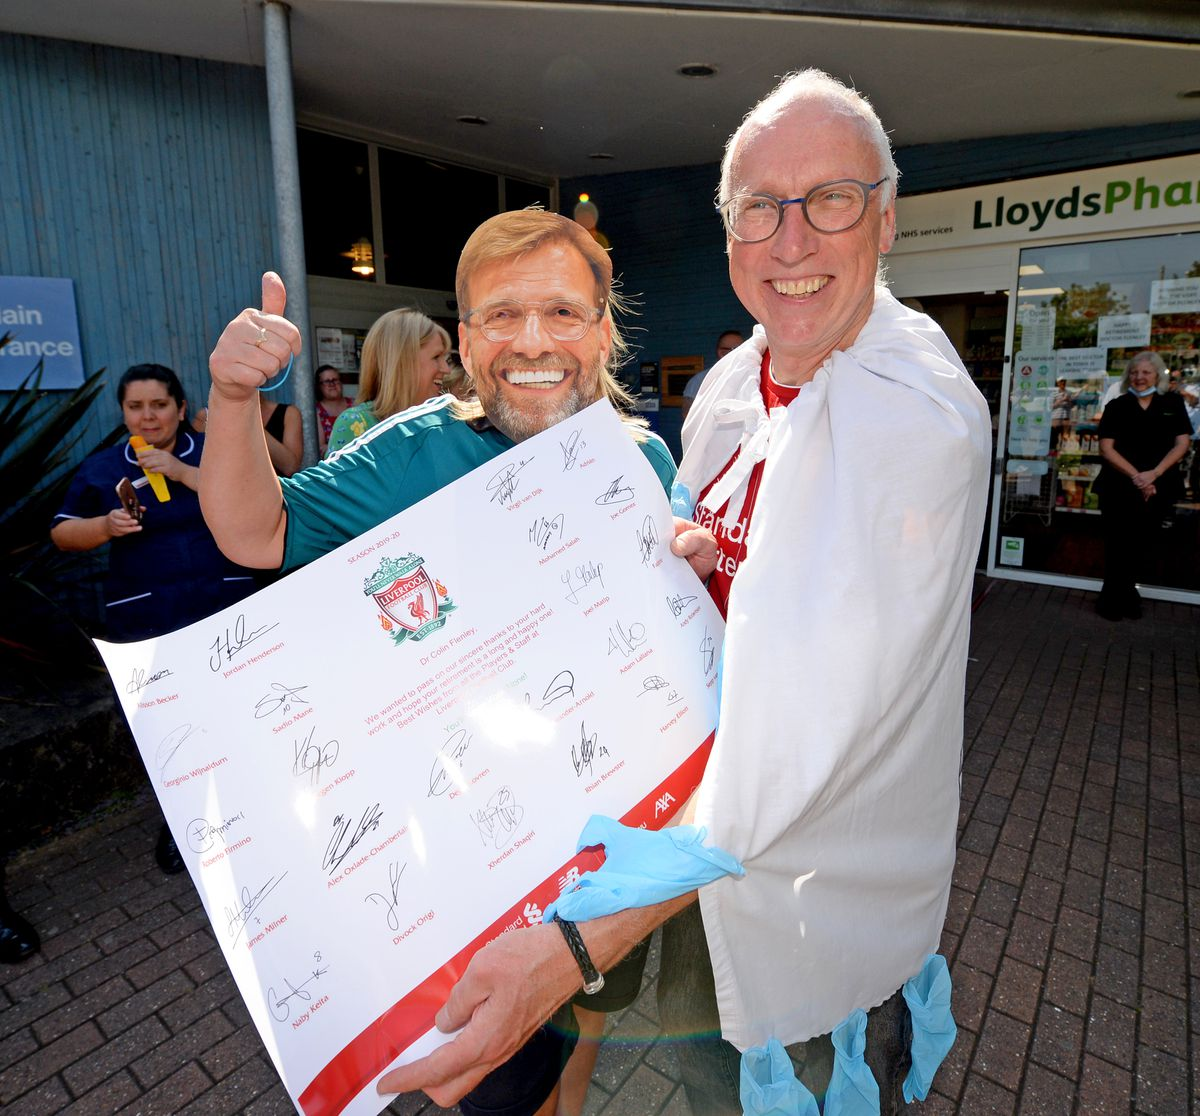 A signed Liverpool poster courtesy of manager Jurgen Klopp